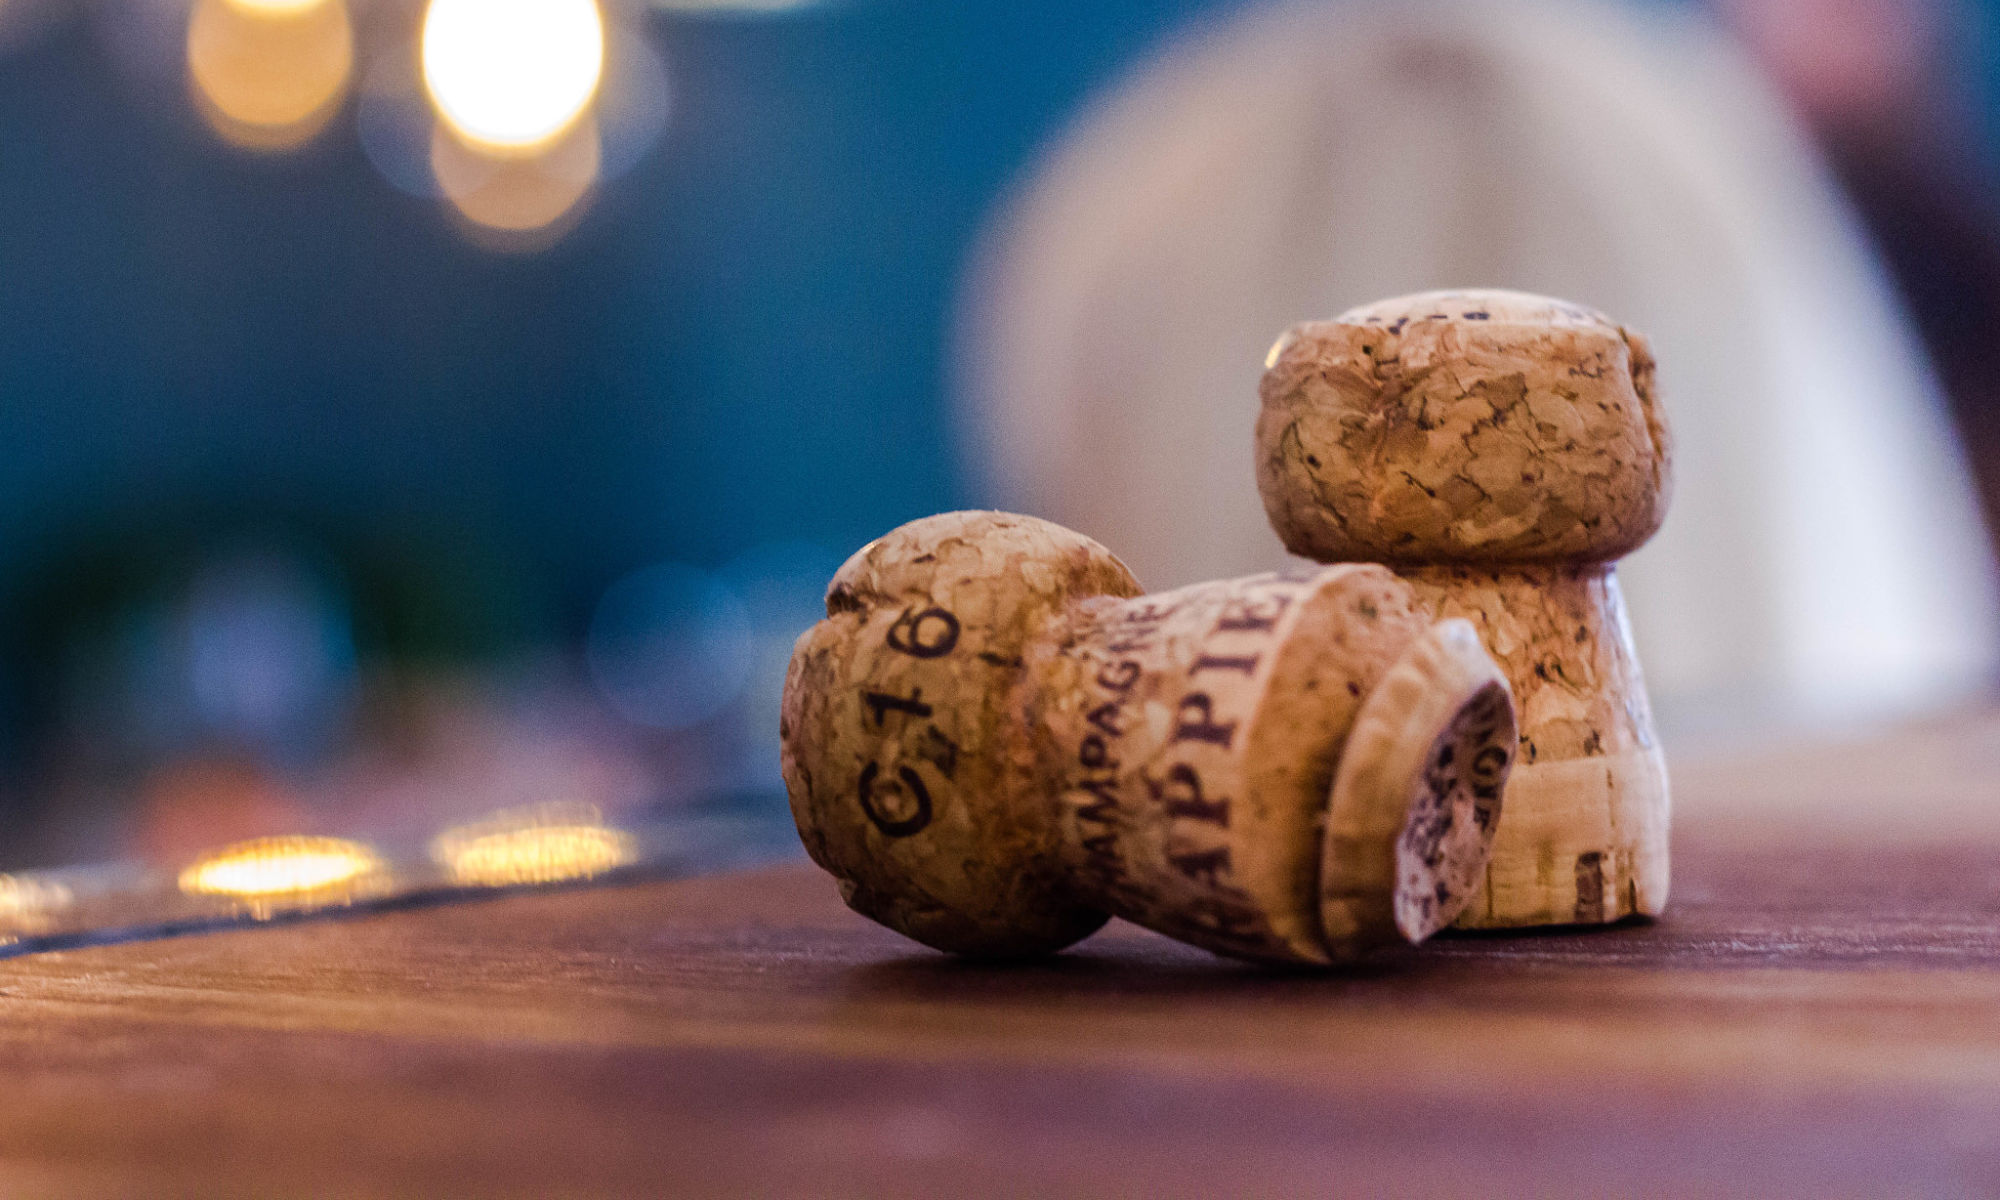 Champagne corks One Foot in the Grapes Jane Clare Instagram gallery